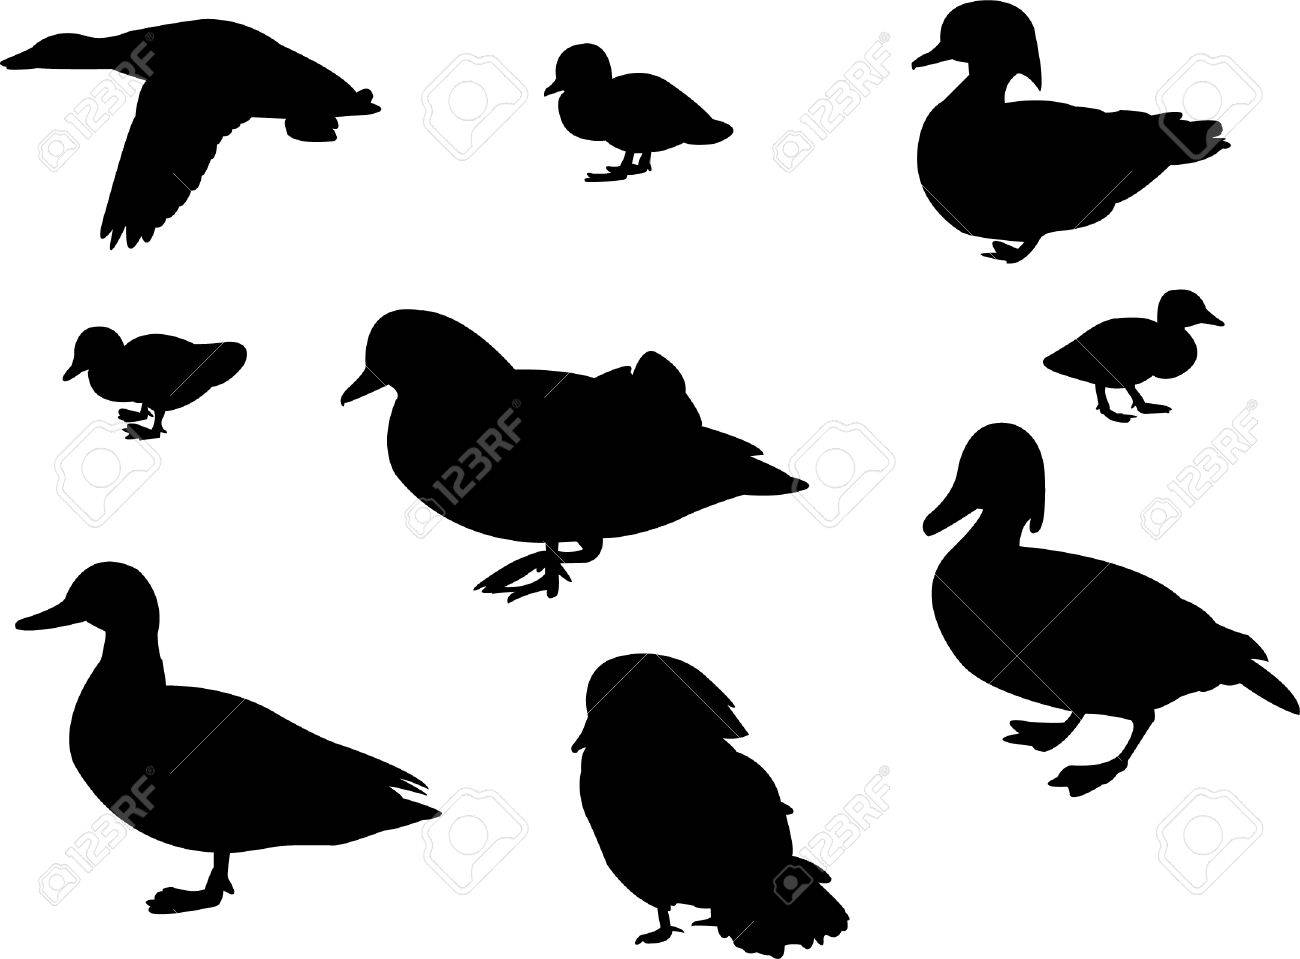 flock of ducks images u0026 stock pictures royalty free flock of